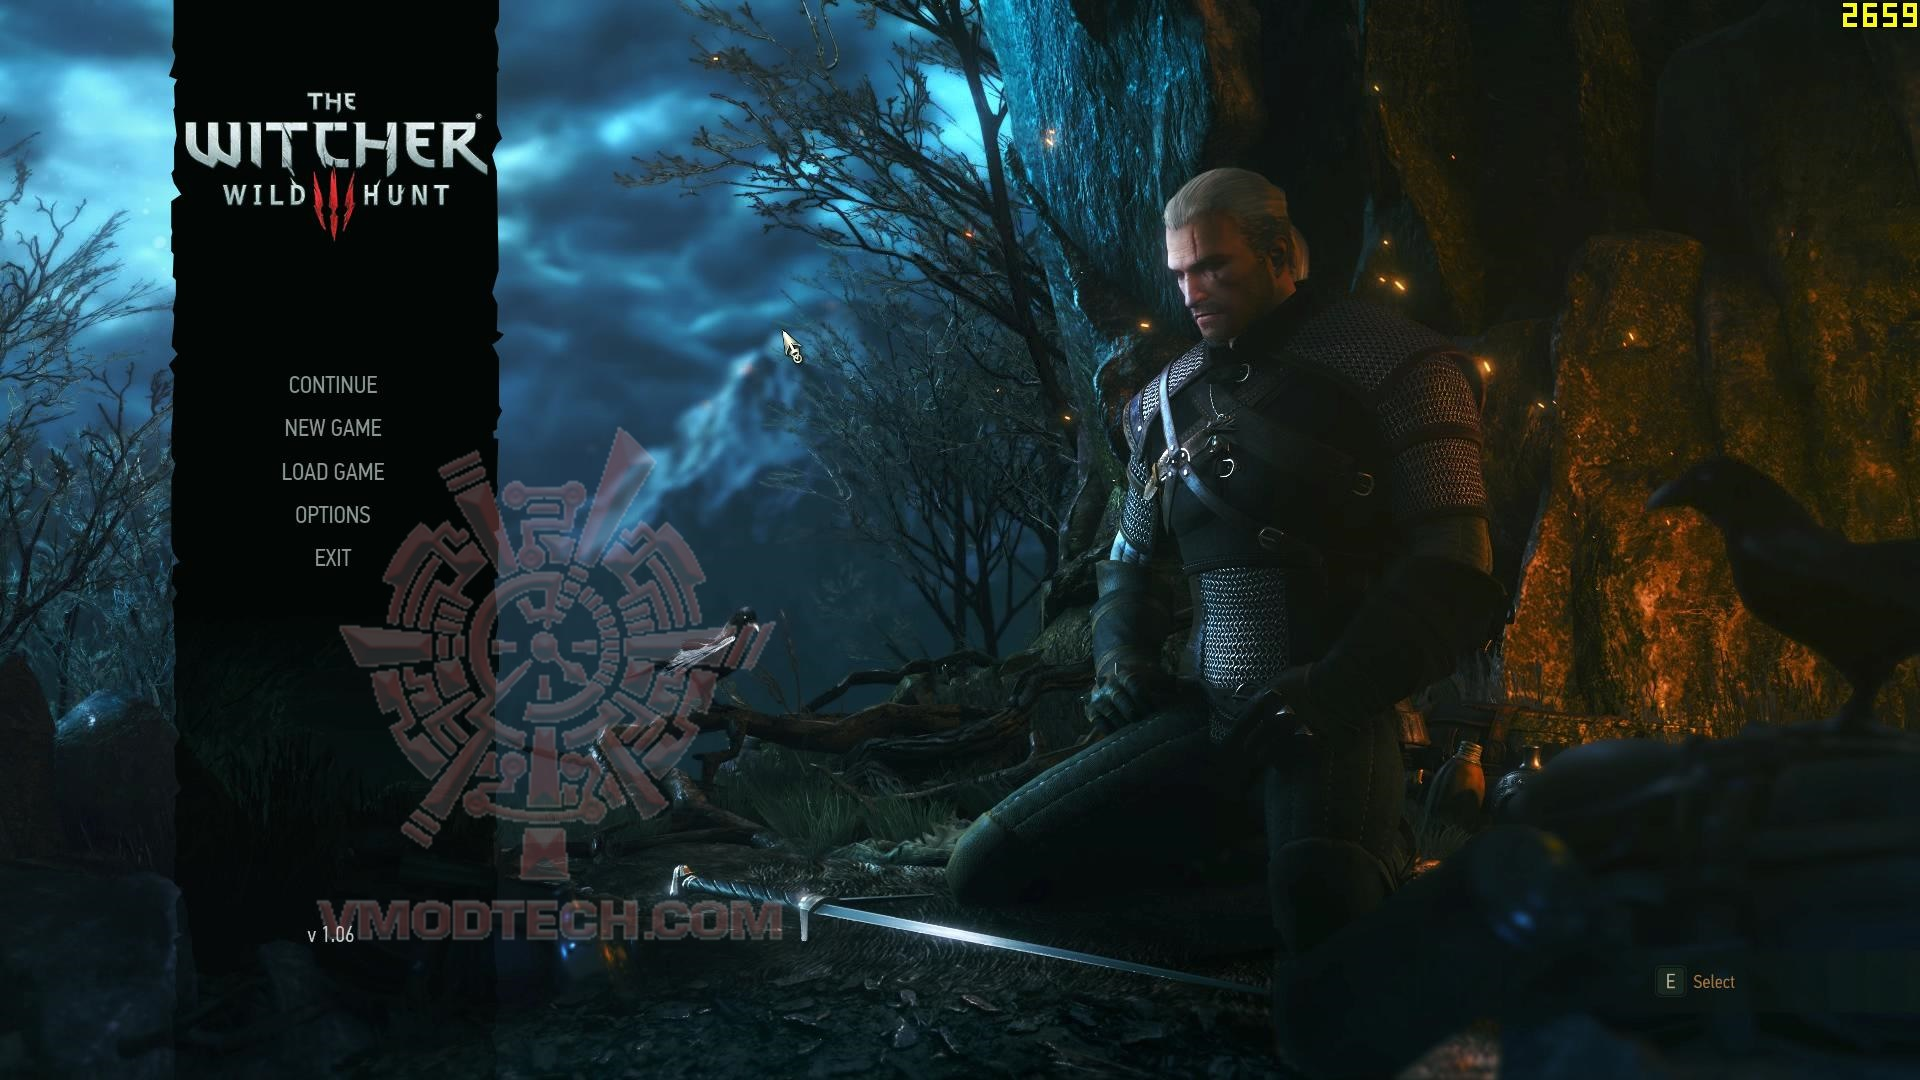 witcher3 2015 06 21 21 34 07 25 GIGABYTE Radeon RX 460 OC Edition 2GB GDDR5 Review